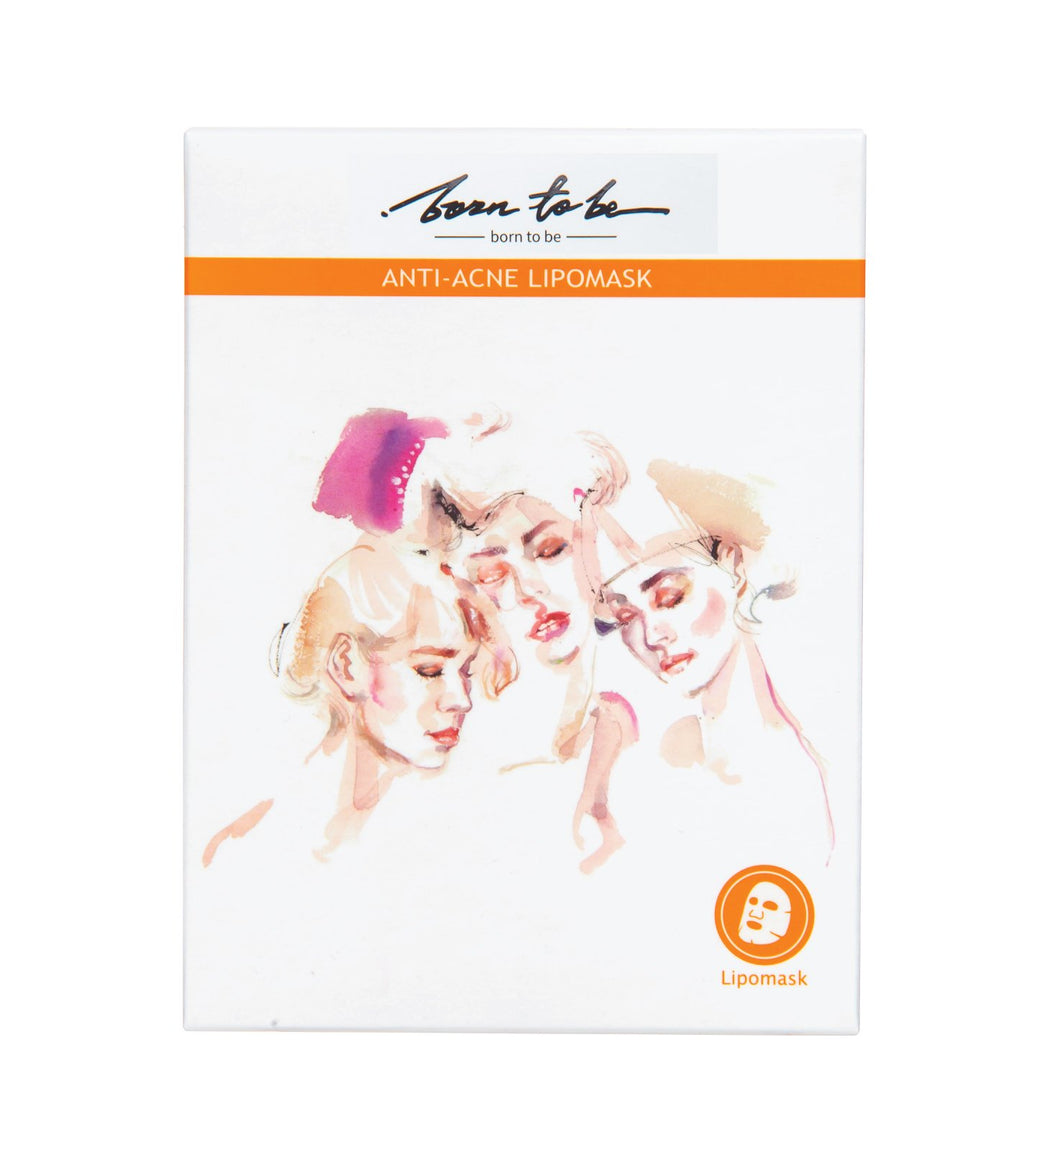 Anti-Acne Lipomask - Sheet Mask (5pcs)